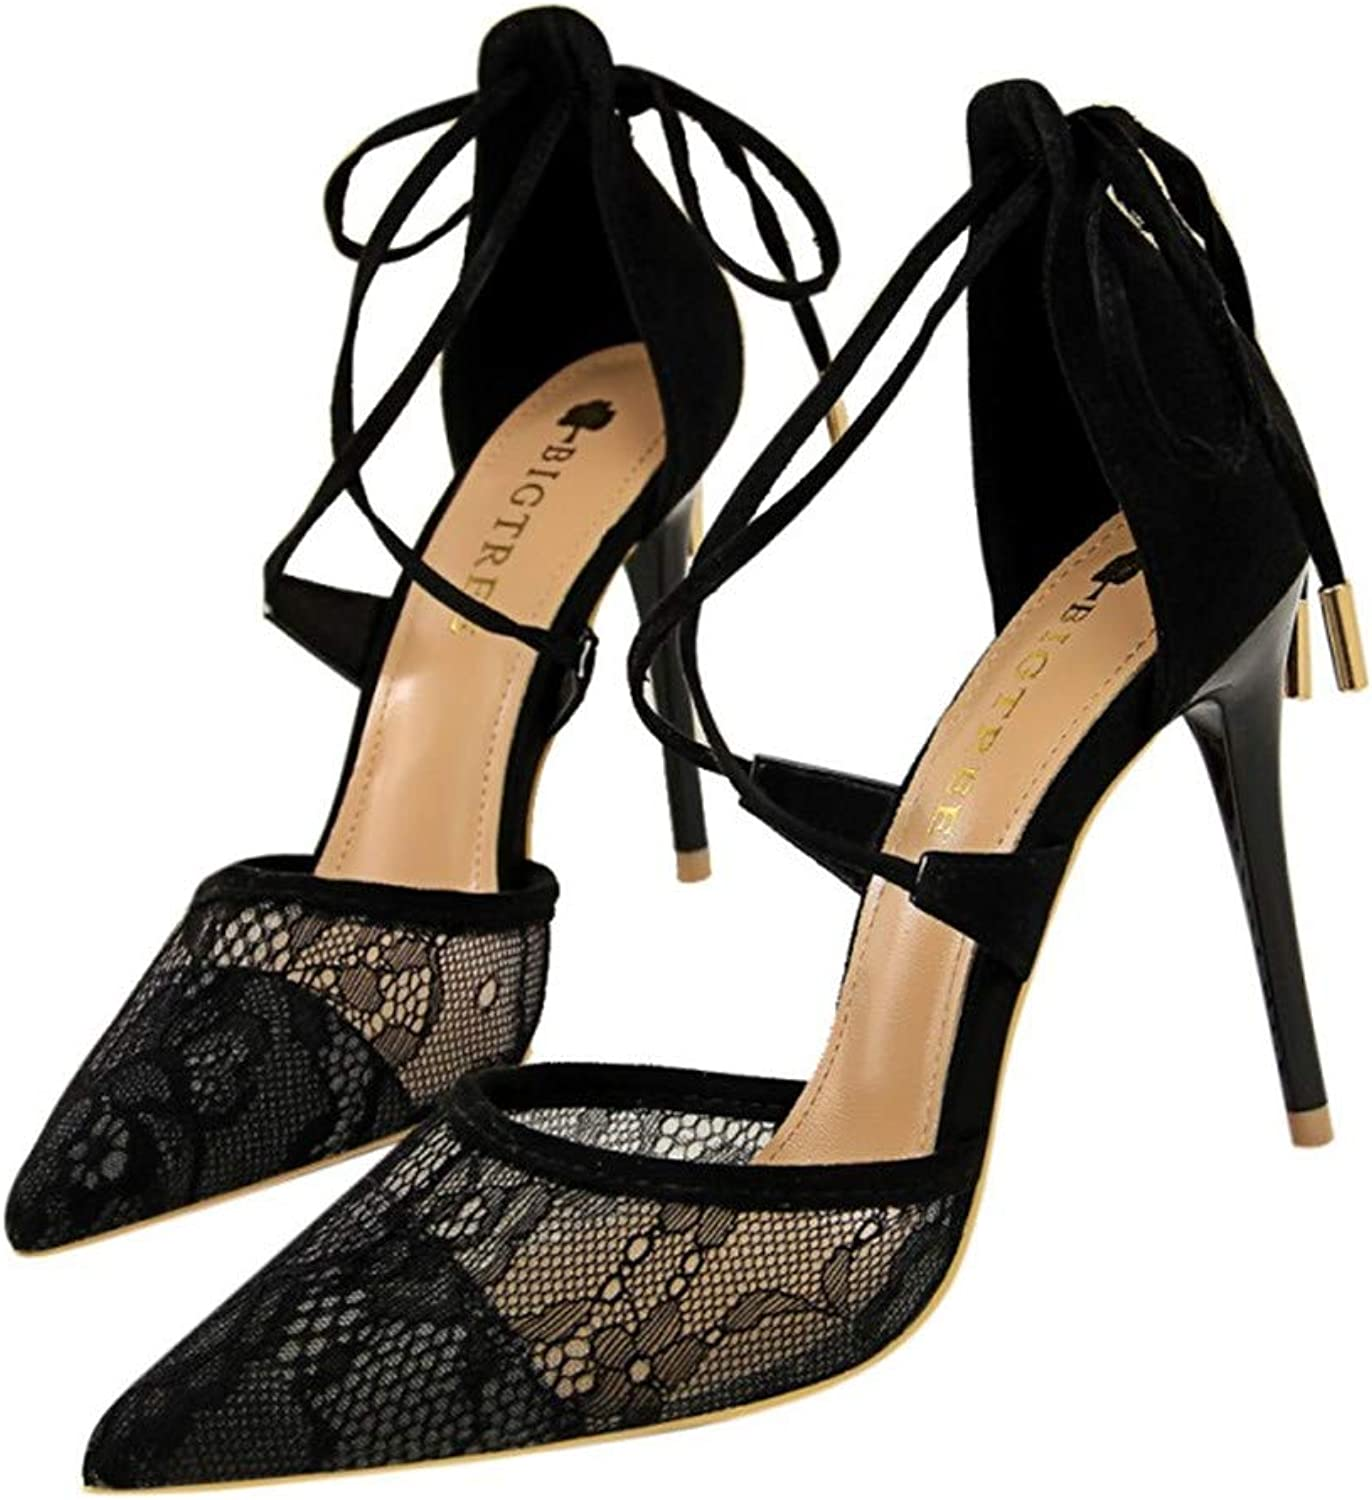 Summer Women High Heels Sandals shoes Party Dress Lace Cross-Tied Pointed Toe shoes